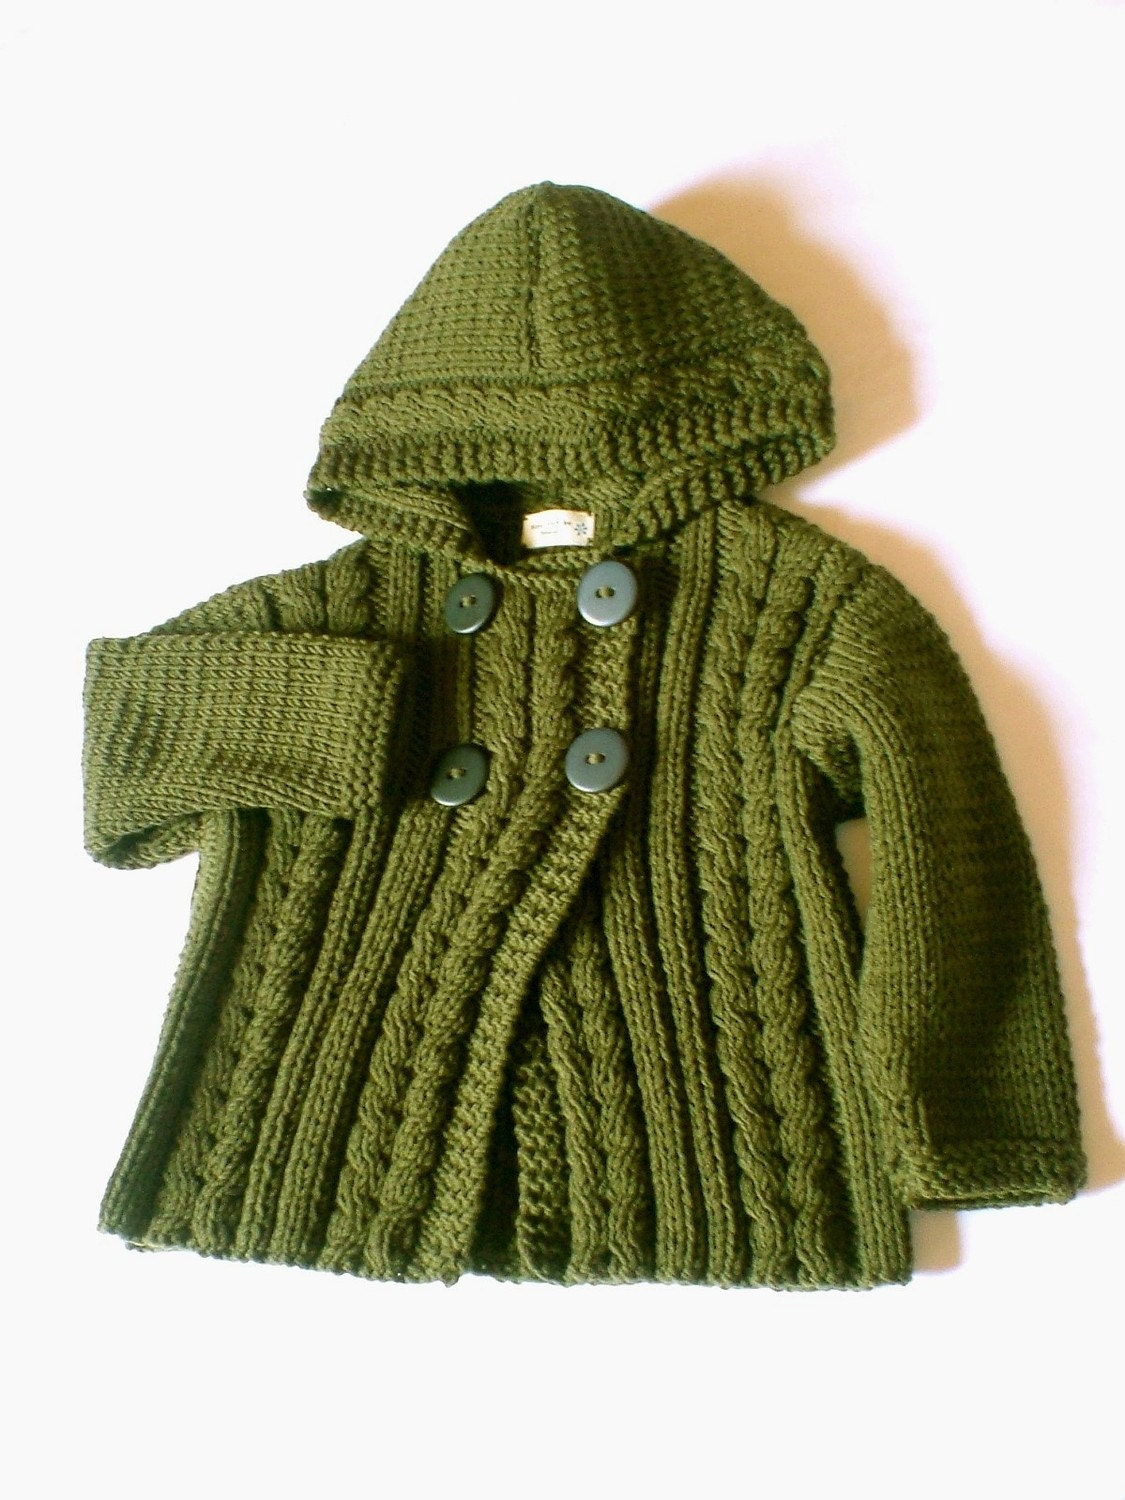 Knitting Pattern Hooded Jacket : Hand Knit Wool Hooded Jacket Cardigan for Boy or Girl by ...